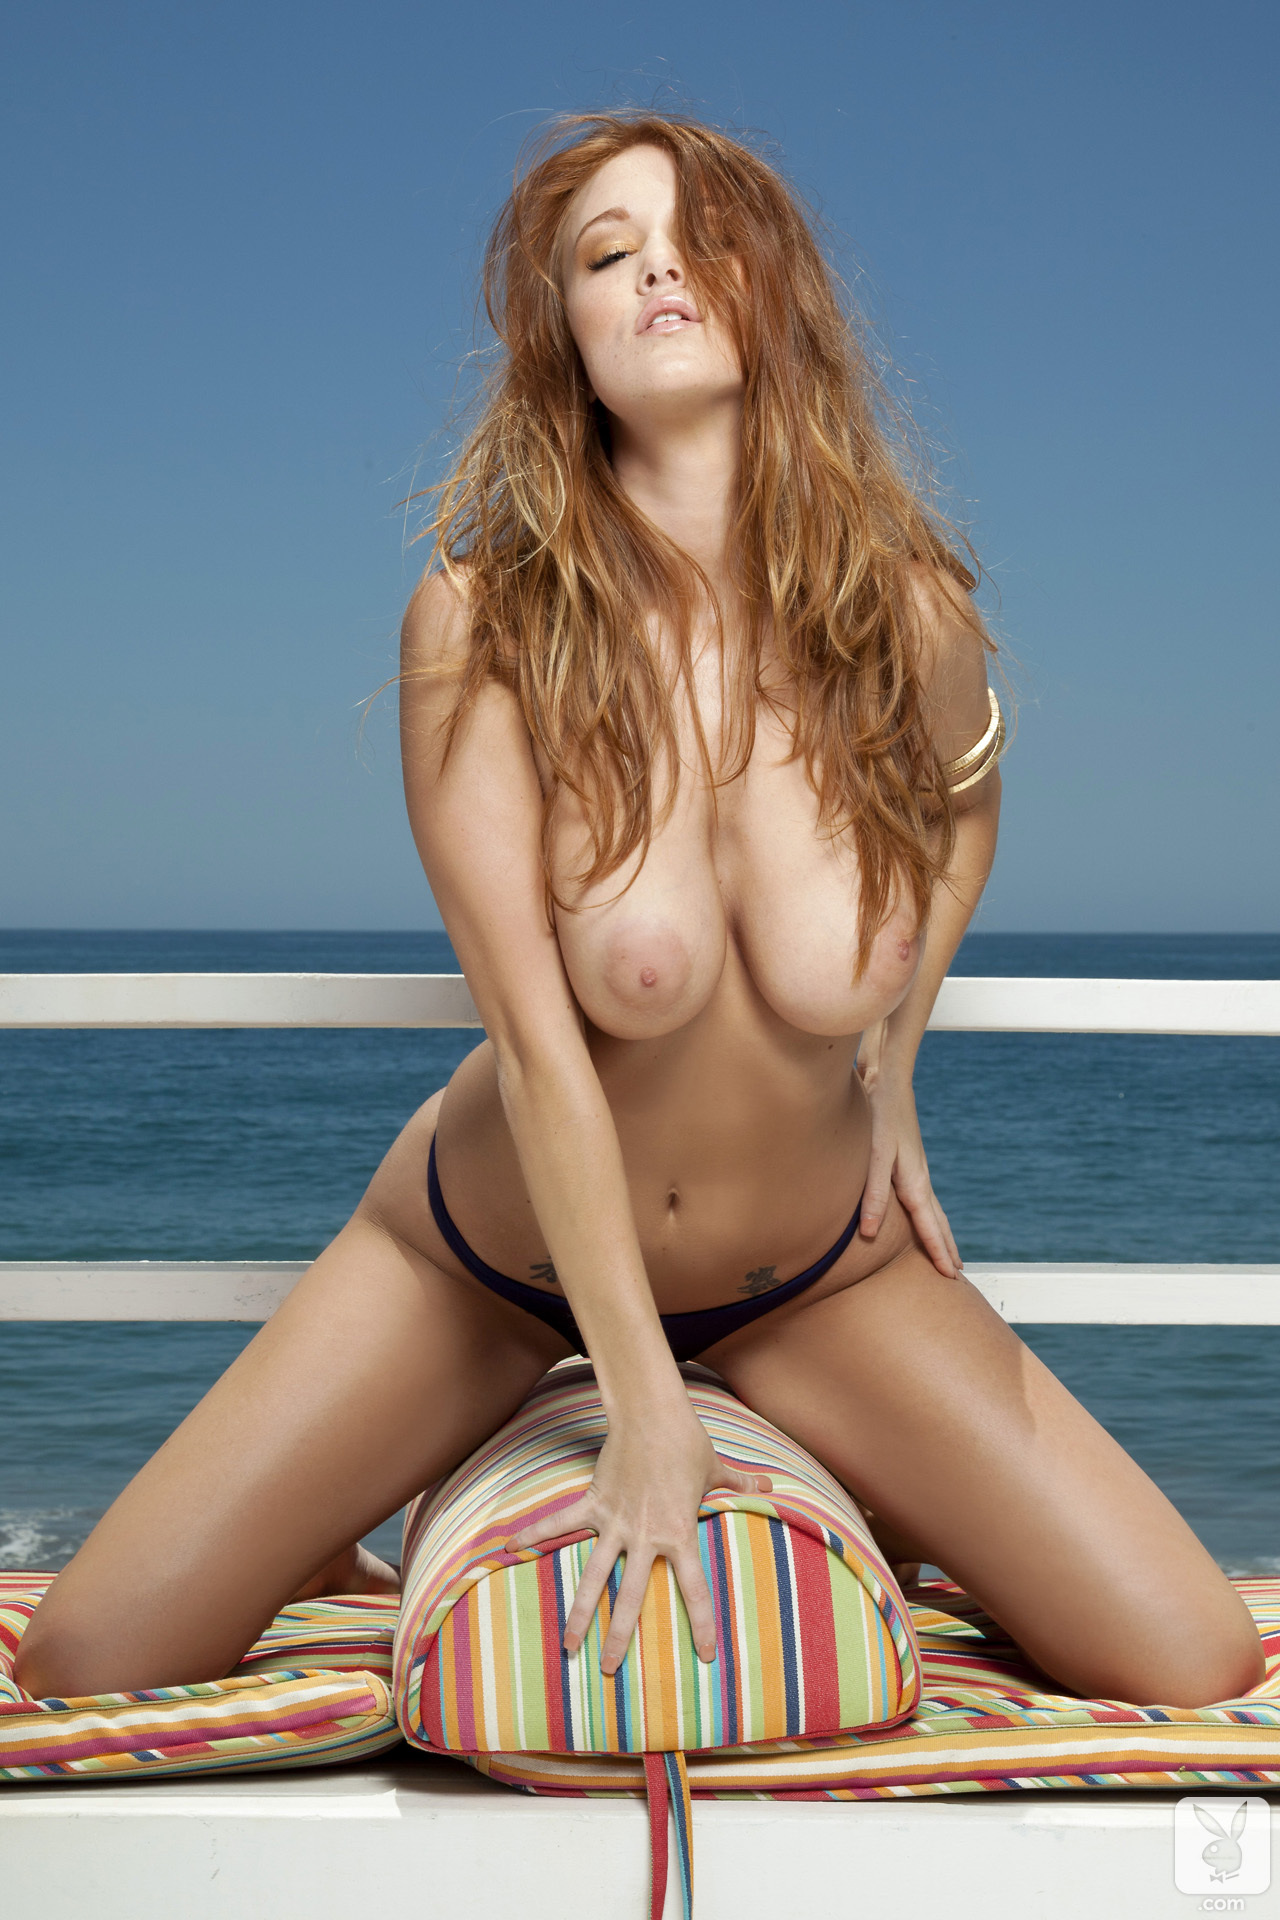 leanna-decker-bikini-boobs-redhead-seaside-playboy-07